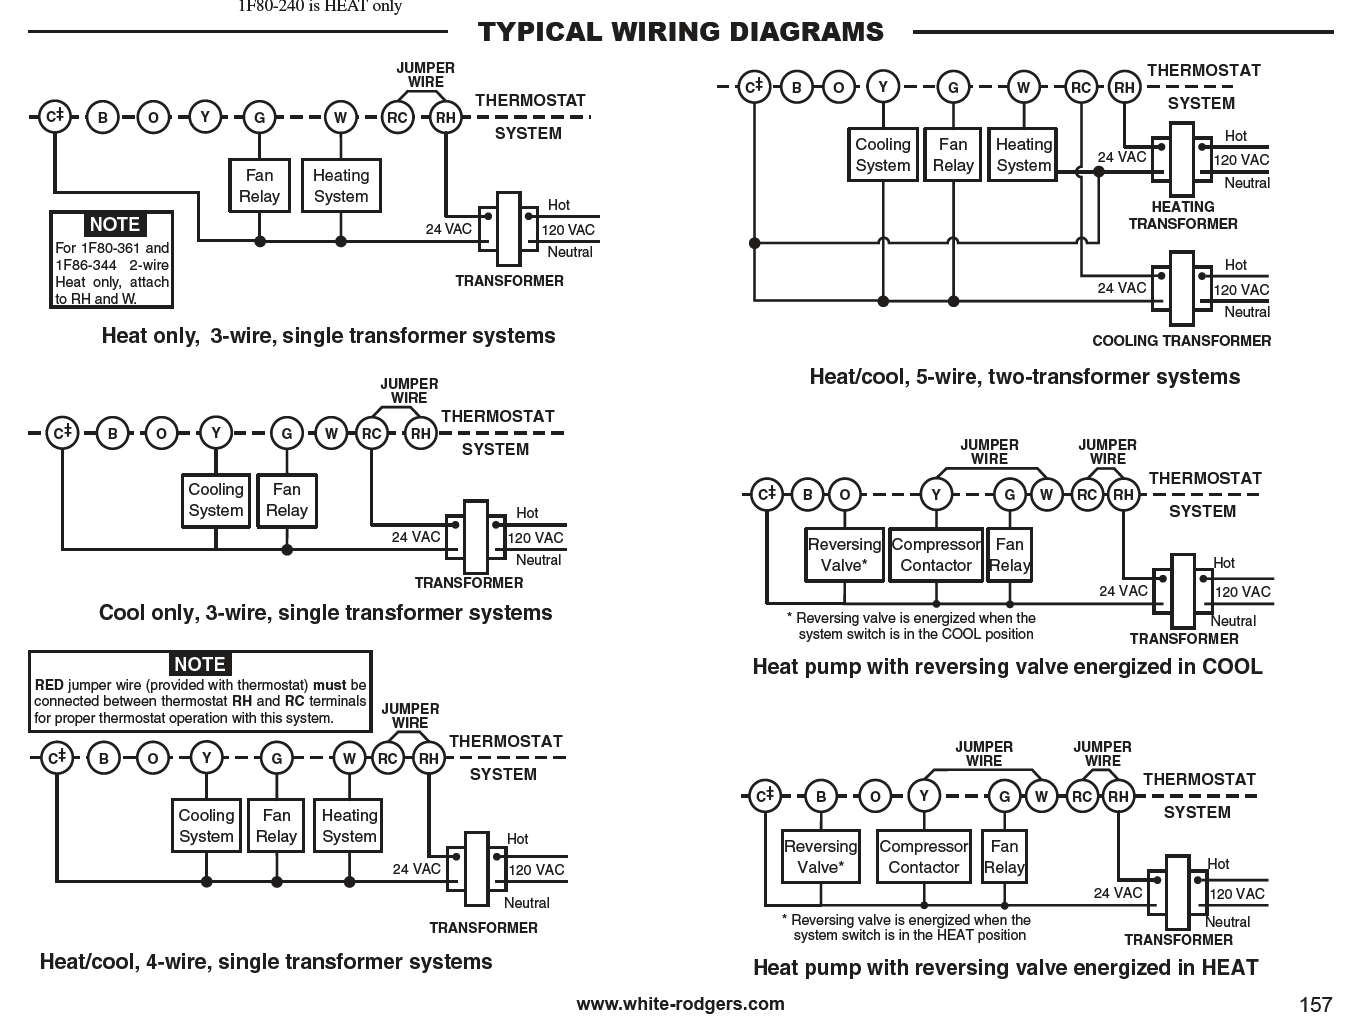 q\u0026a on how wire an emerson or white rodgers room thermostat